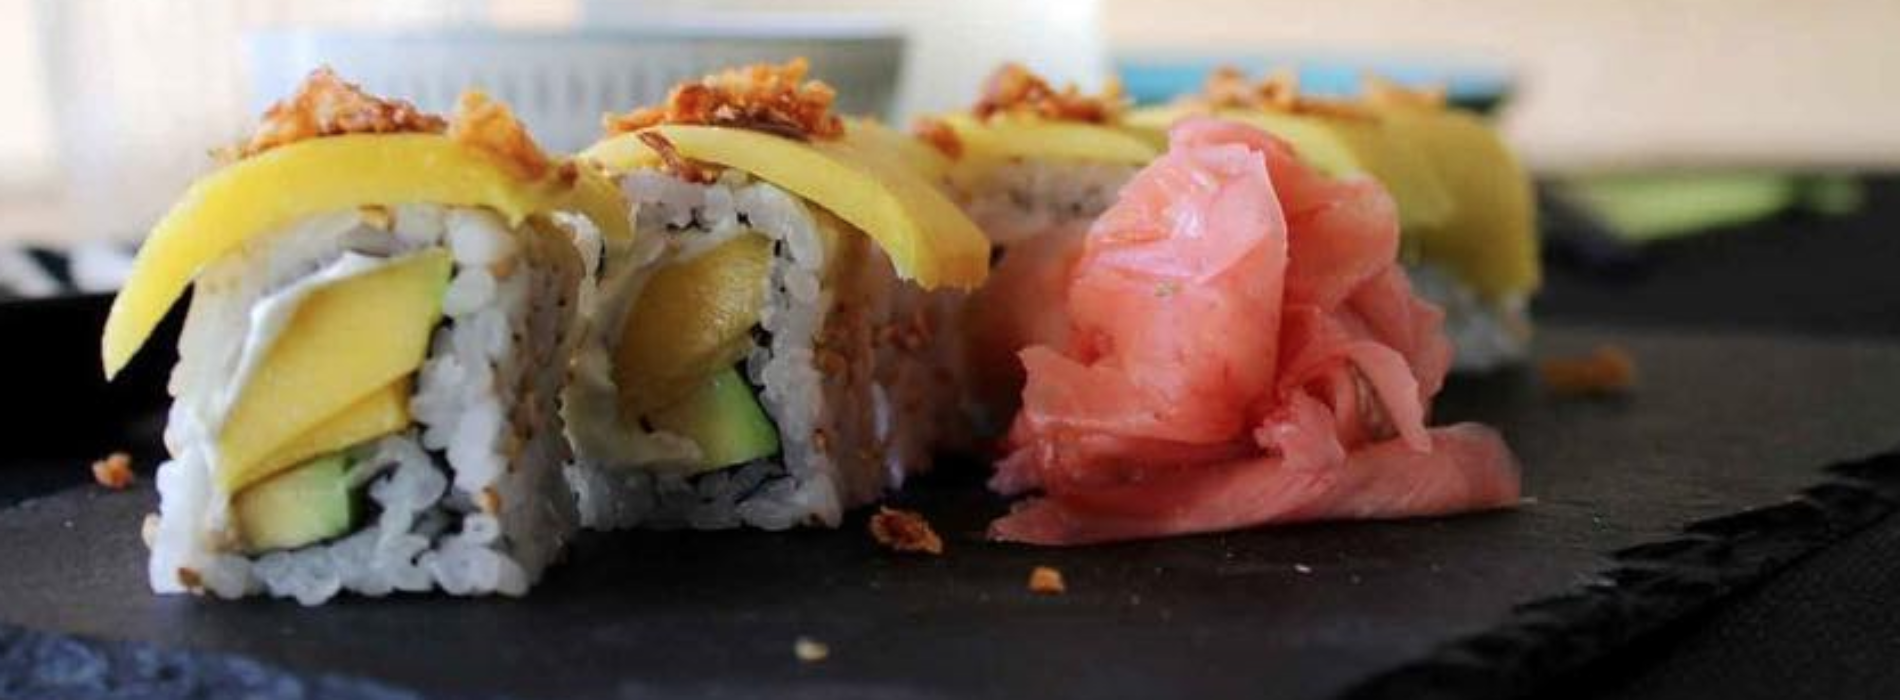 Mun sushi bar Roma, mangiare giapponese a Centocelle